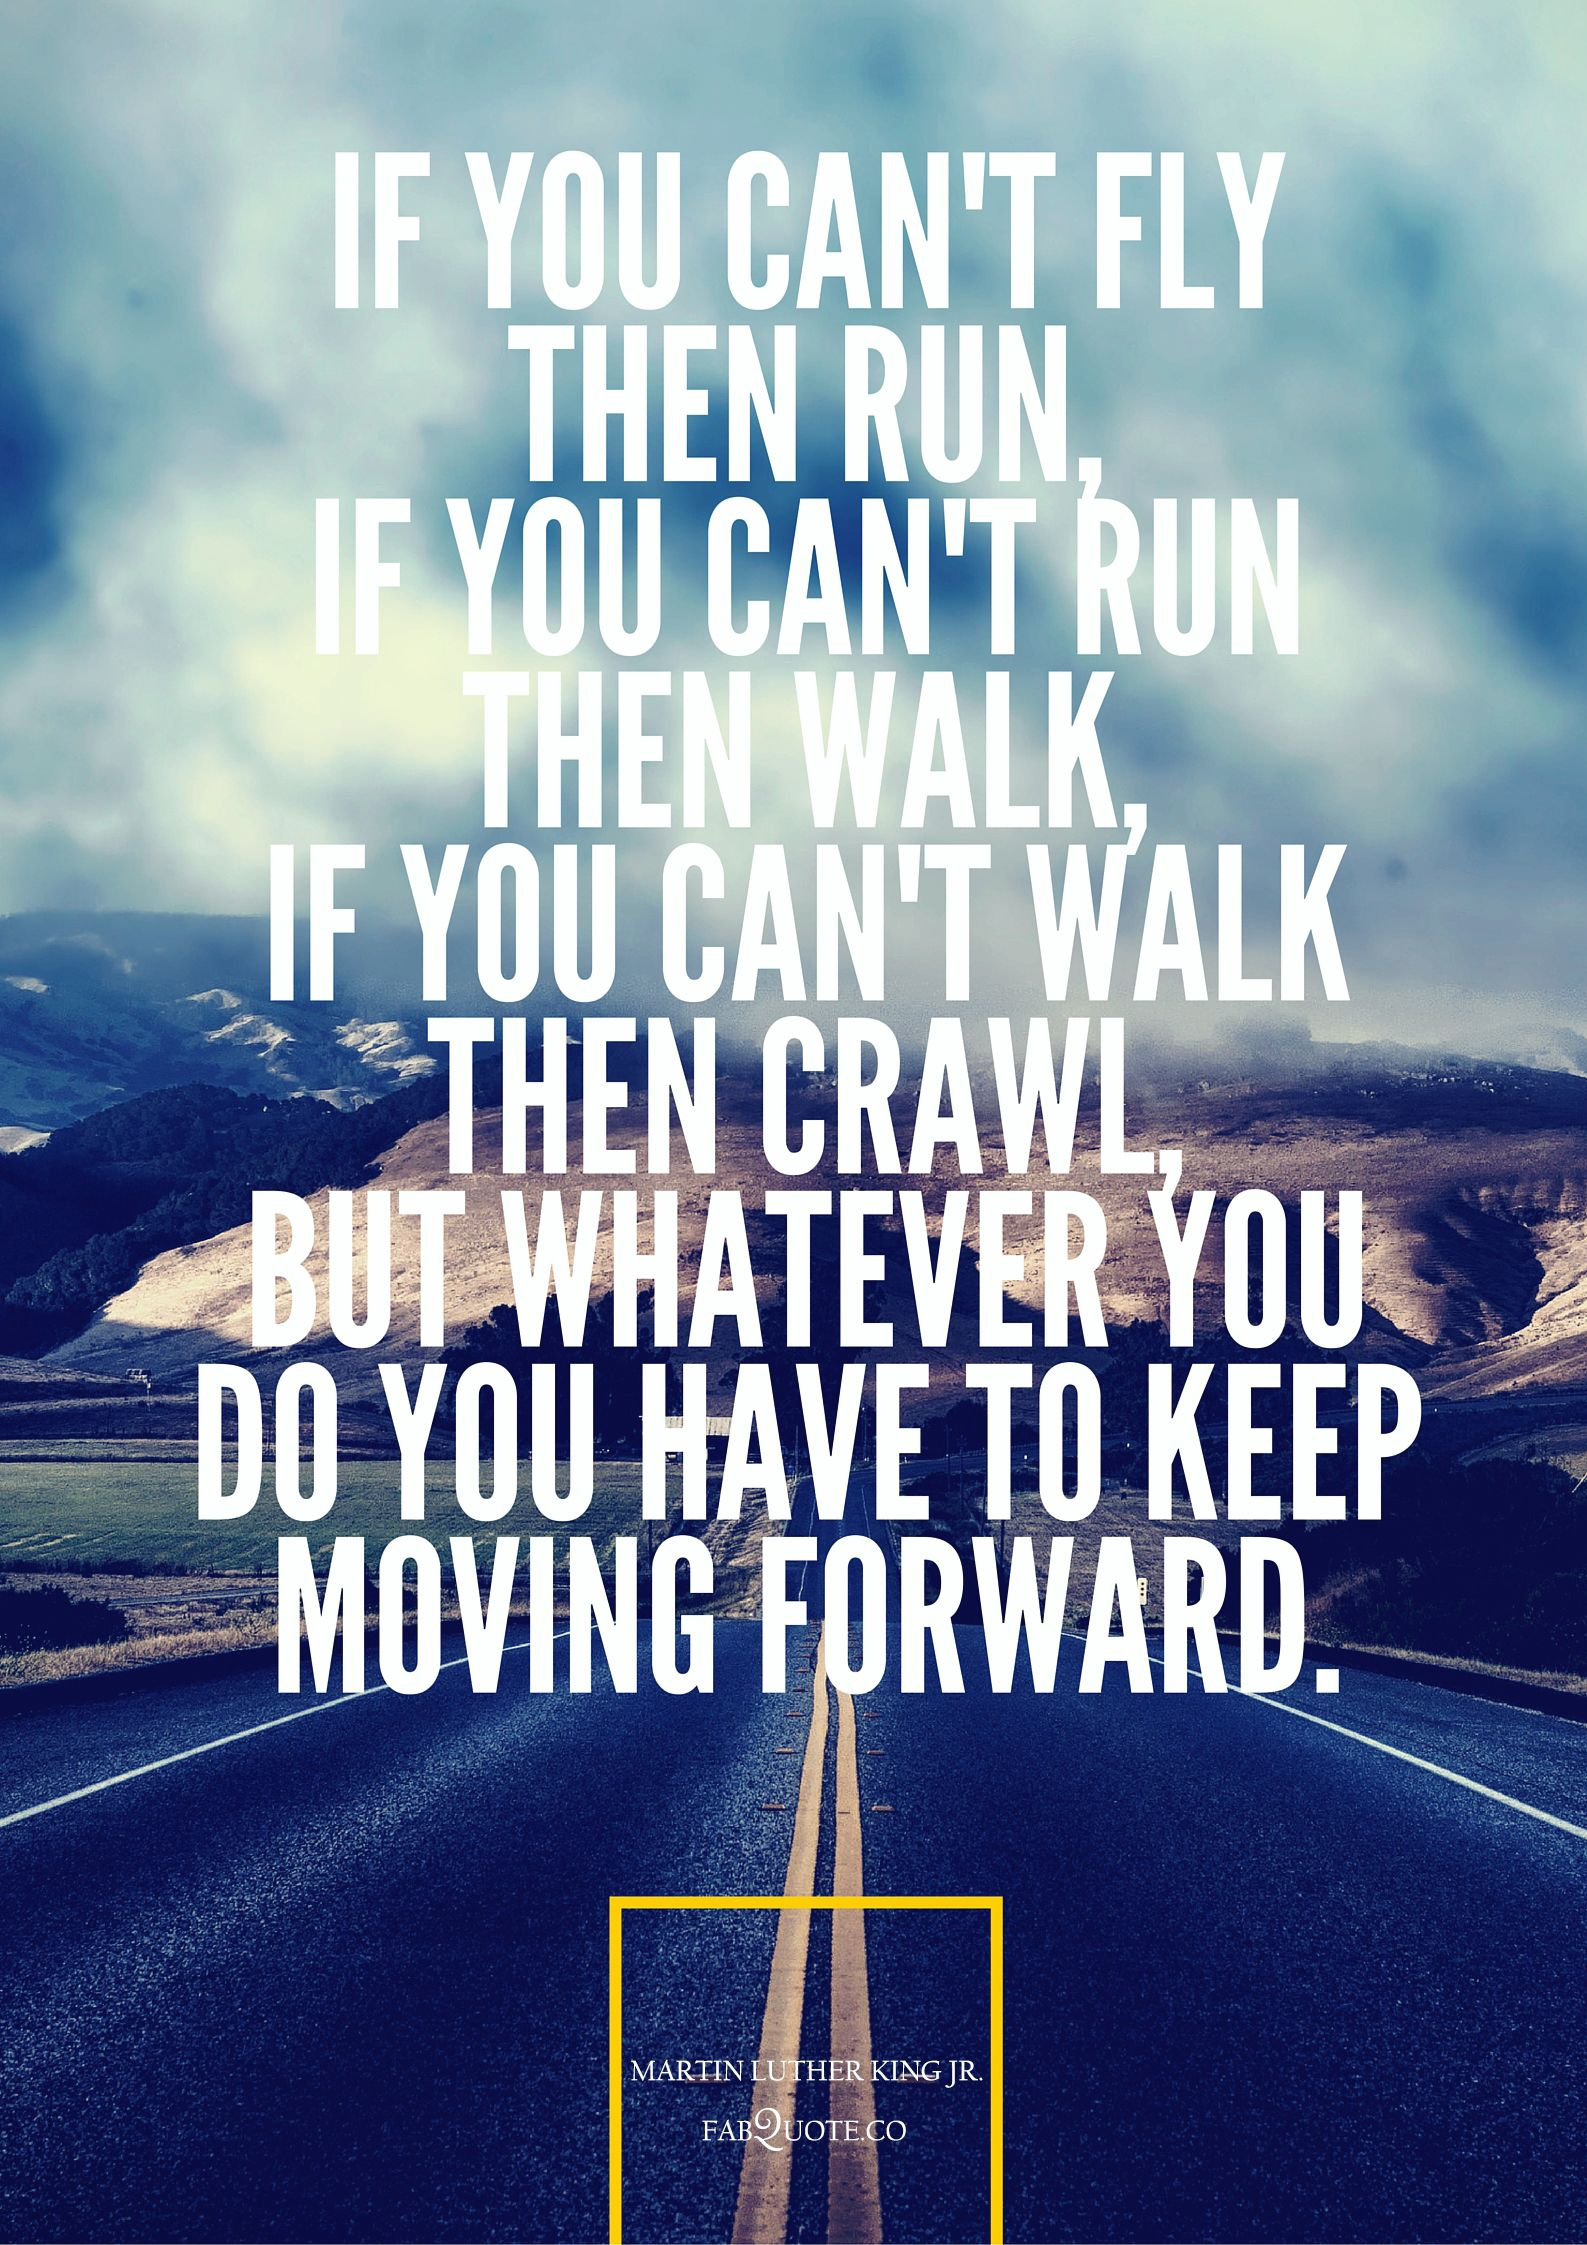 Quotes On Moving Forward Martin Luther King Jr You Have To Keep Moving Forward  Prinzak